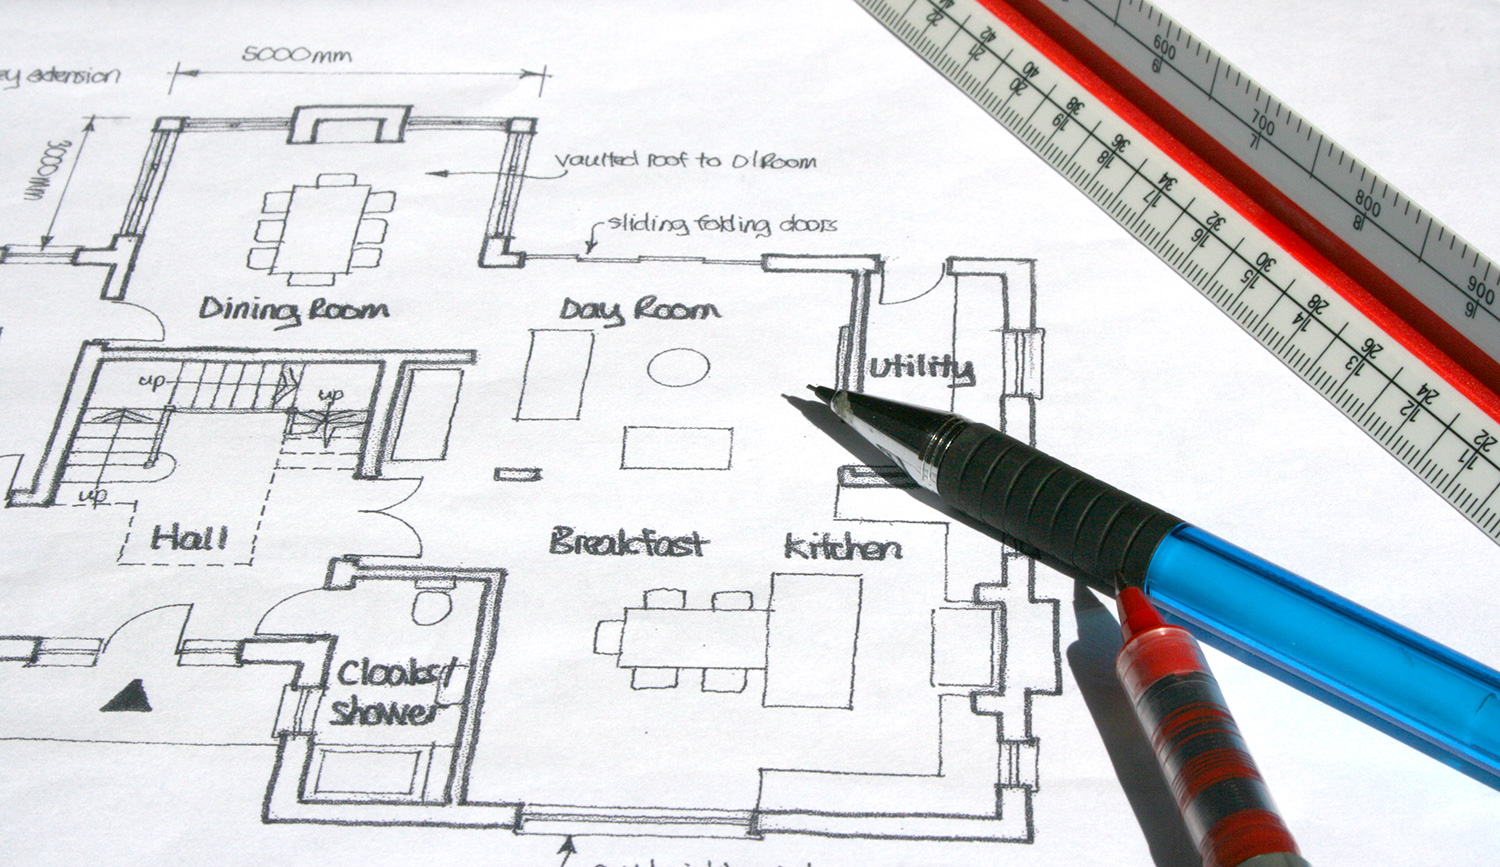 A customer centric approach to building your home